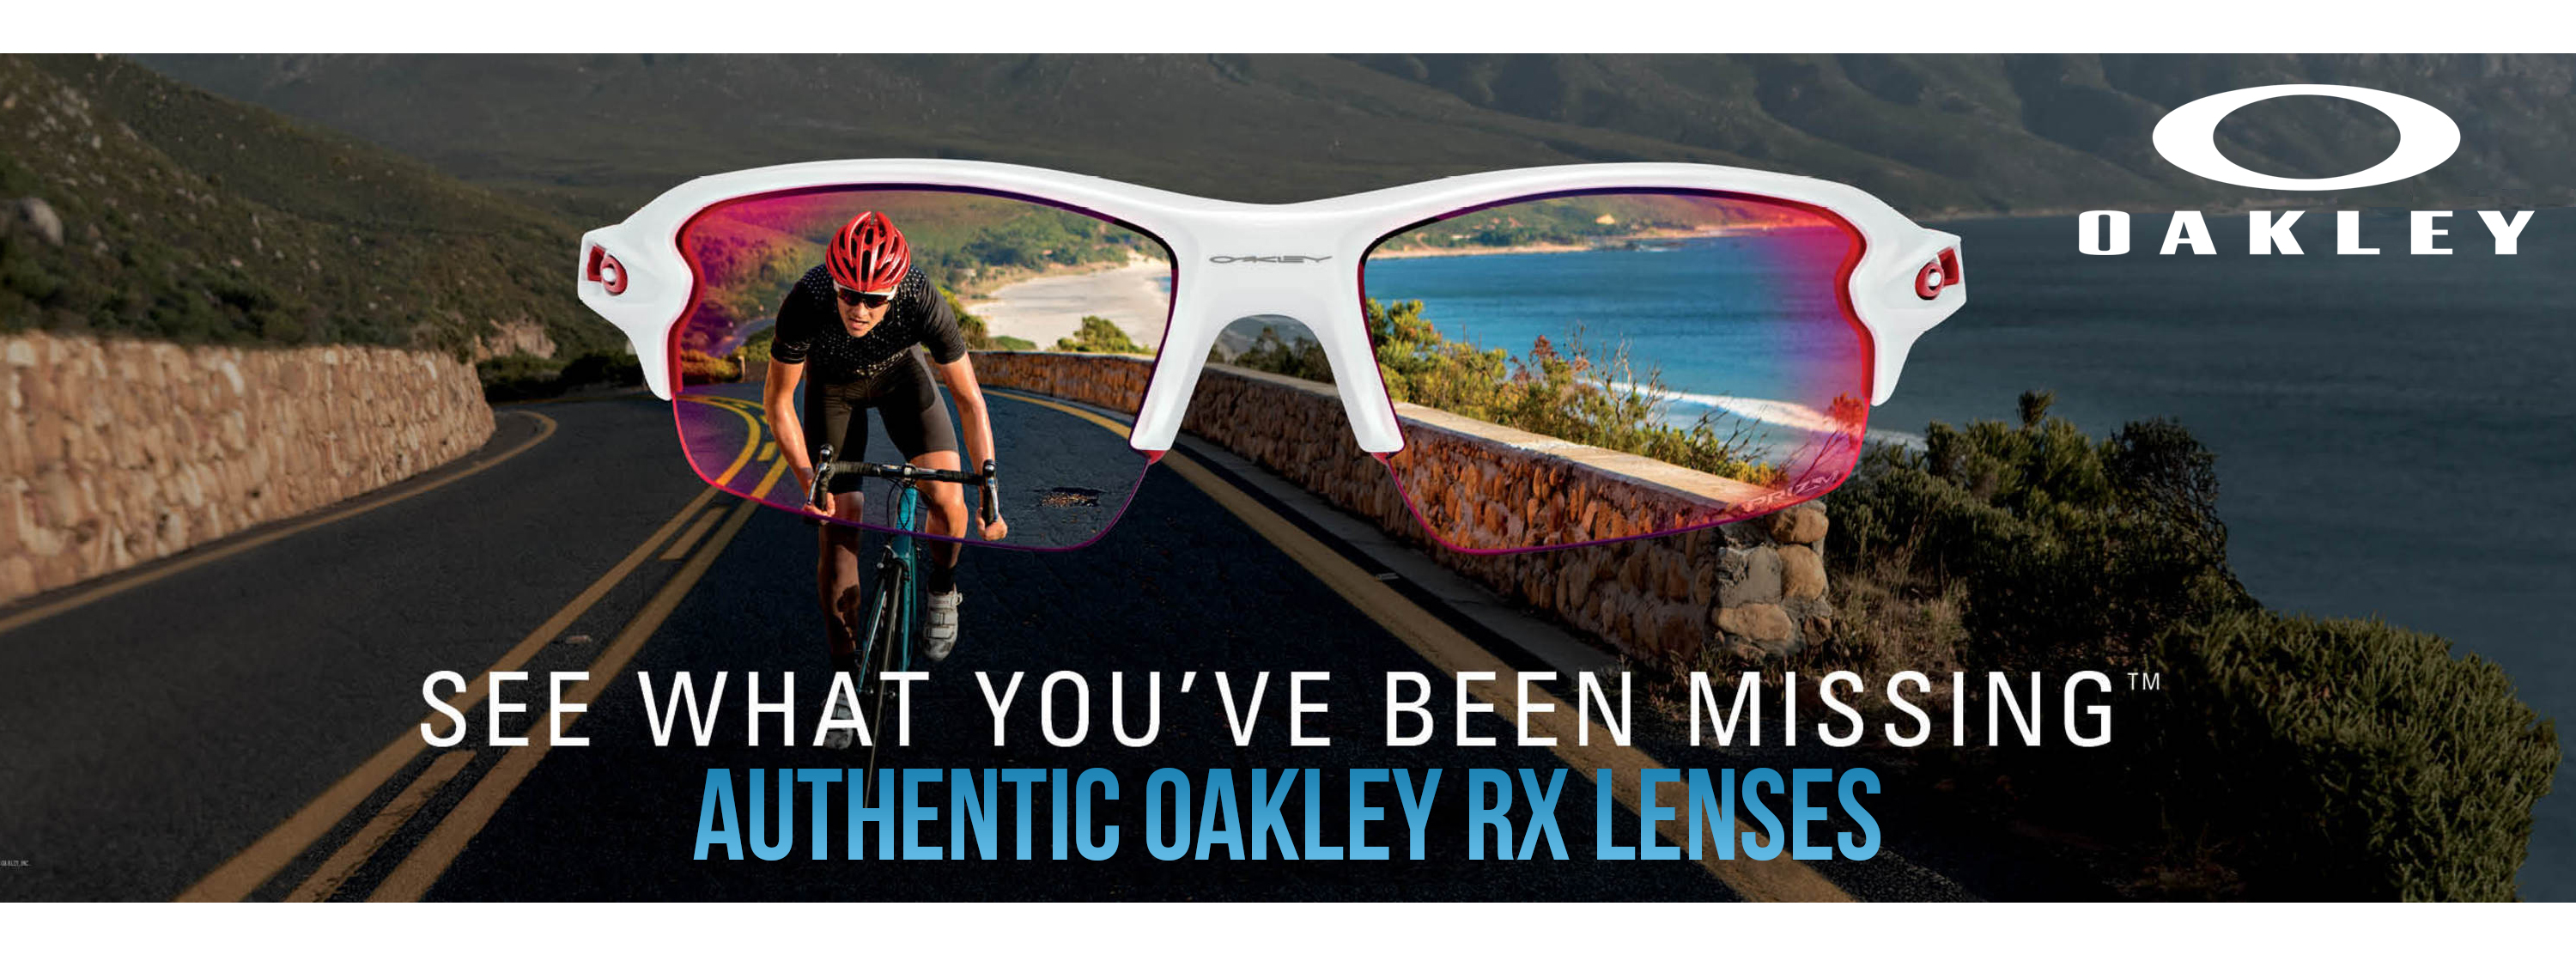 Authentic Prescription Oakley Sunglasses